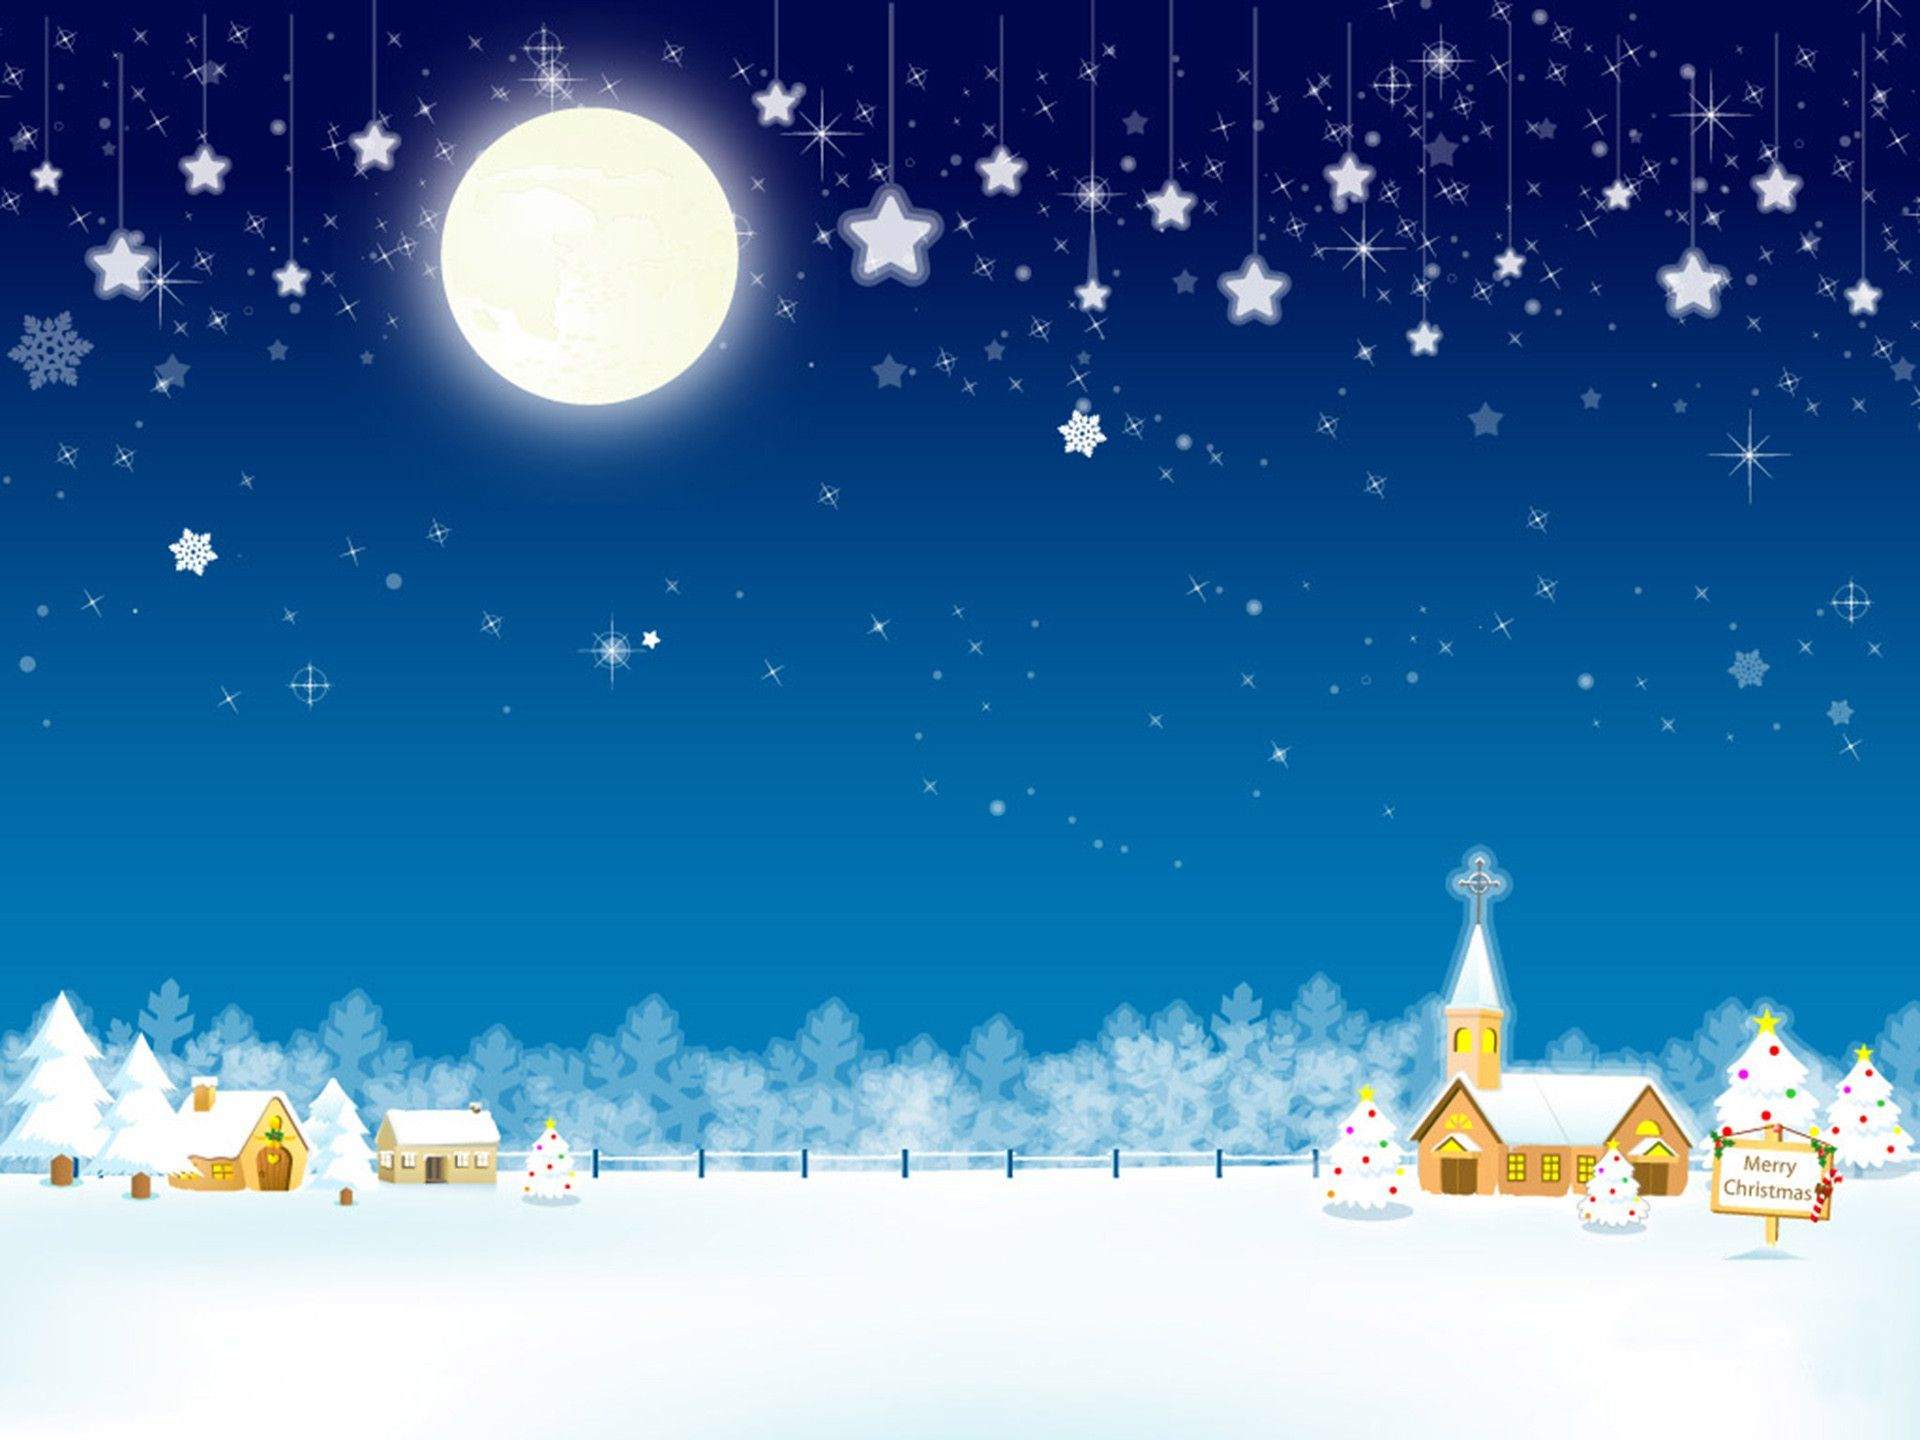 New Merry Christmas Cool Backgrounds Download Free Word Excel